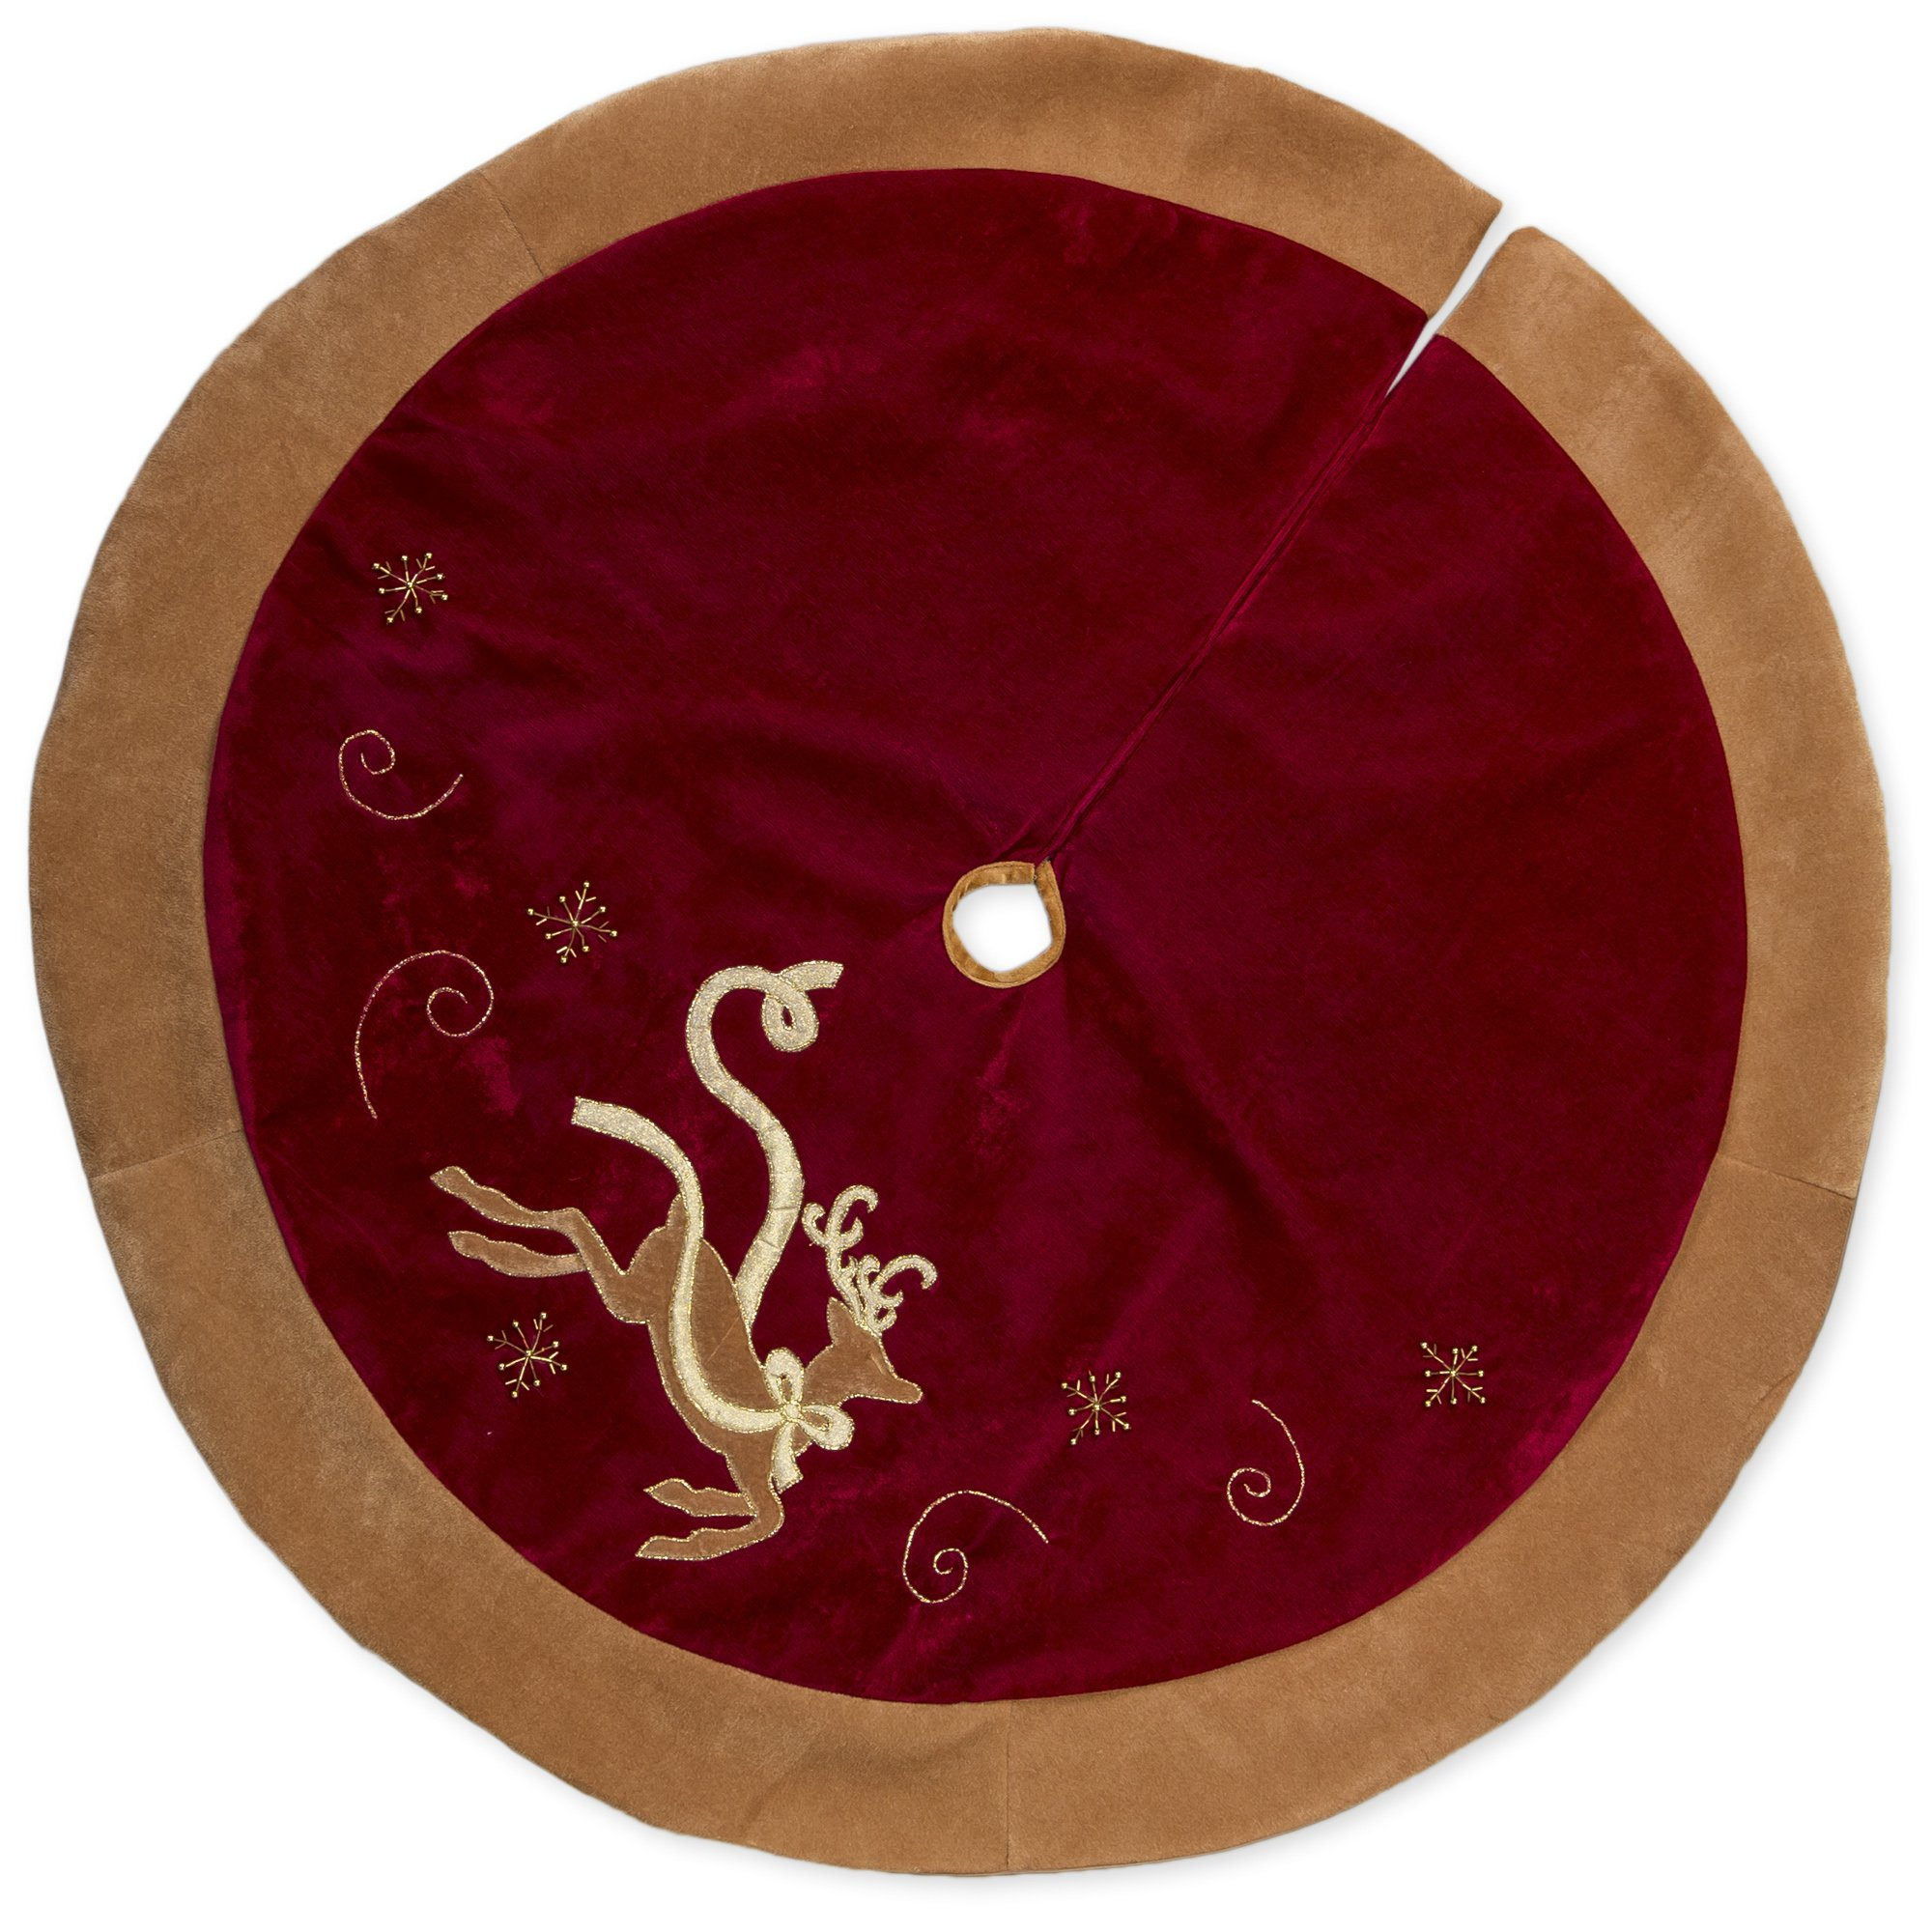 48 inch Red Velvet and Reindeer Applique with Gold Tone Trip Christmas Tree Skirt